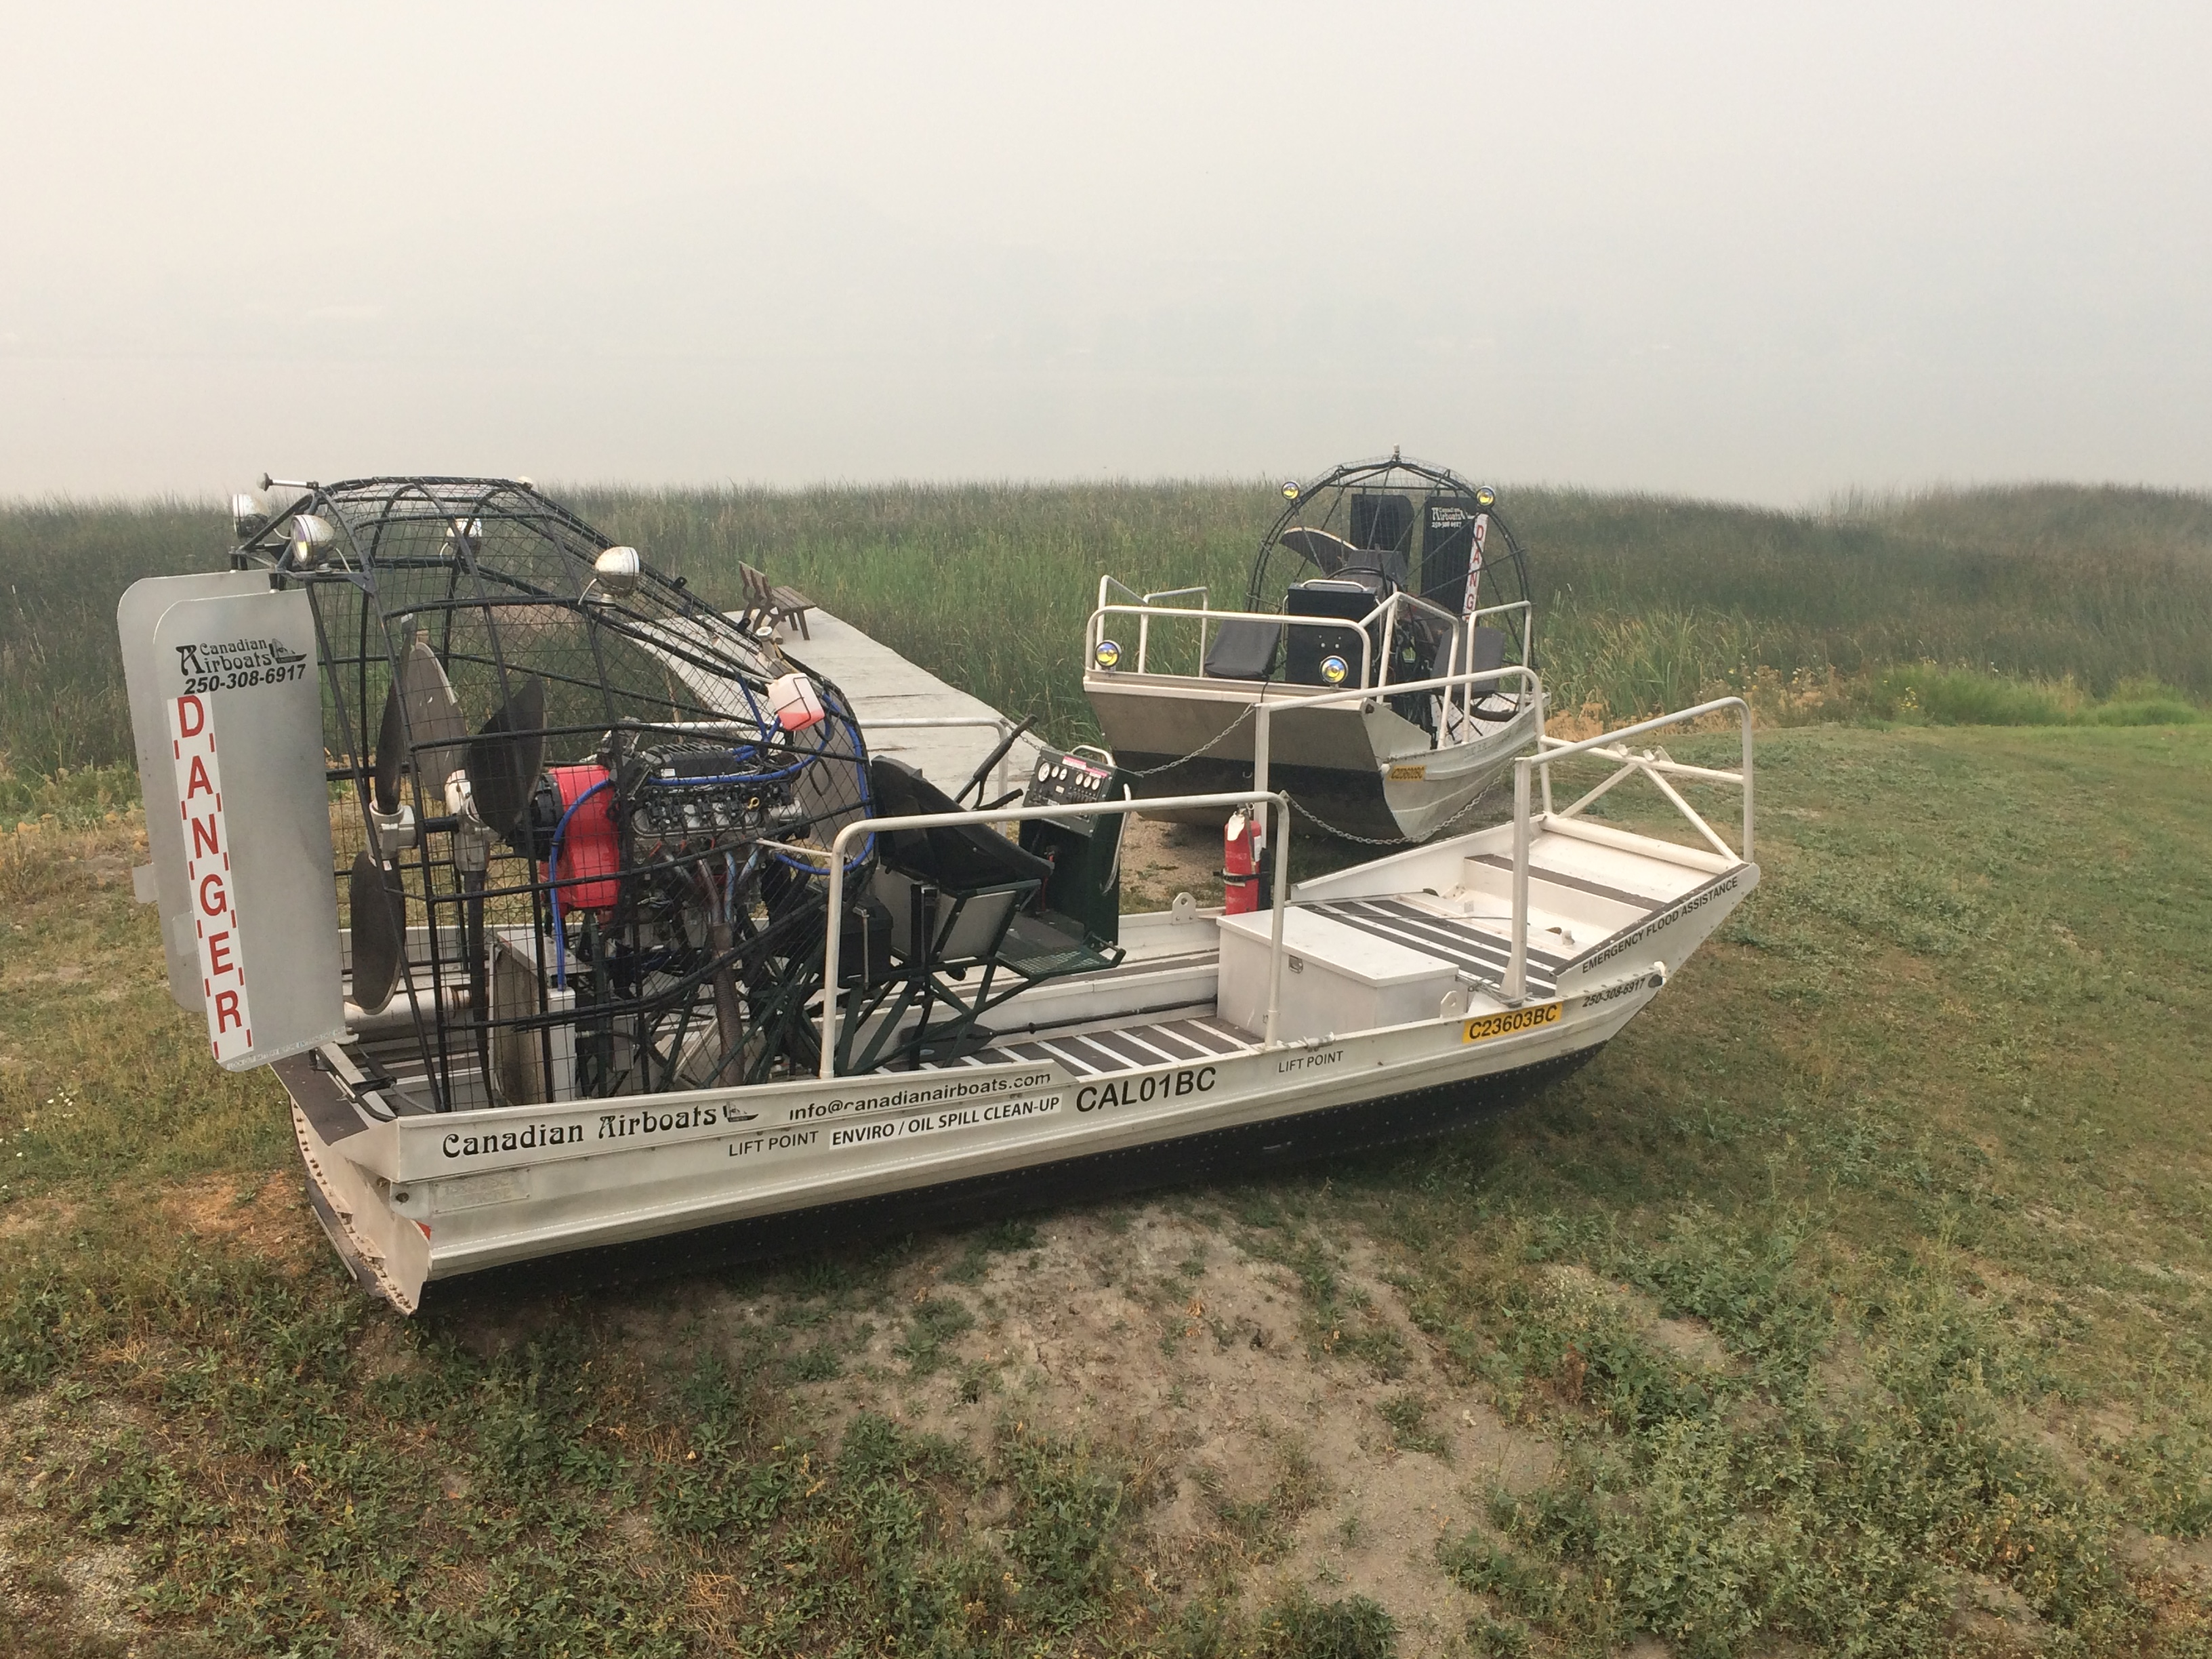 Pre Owned Airboats